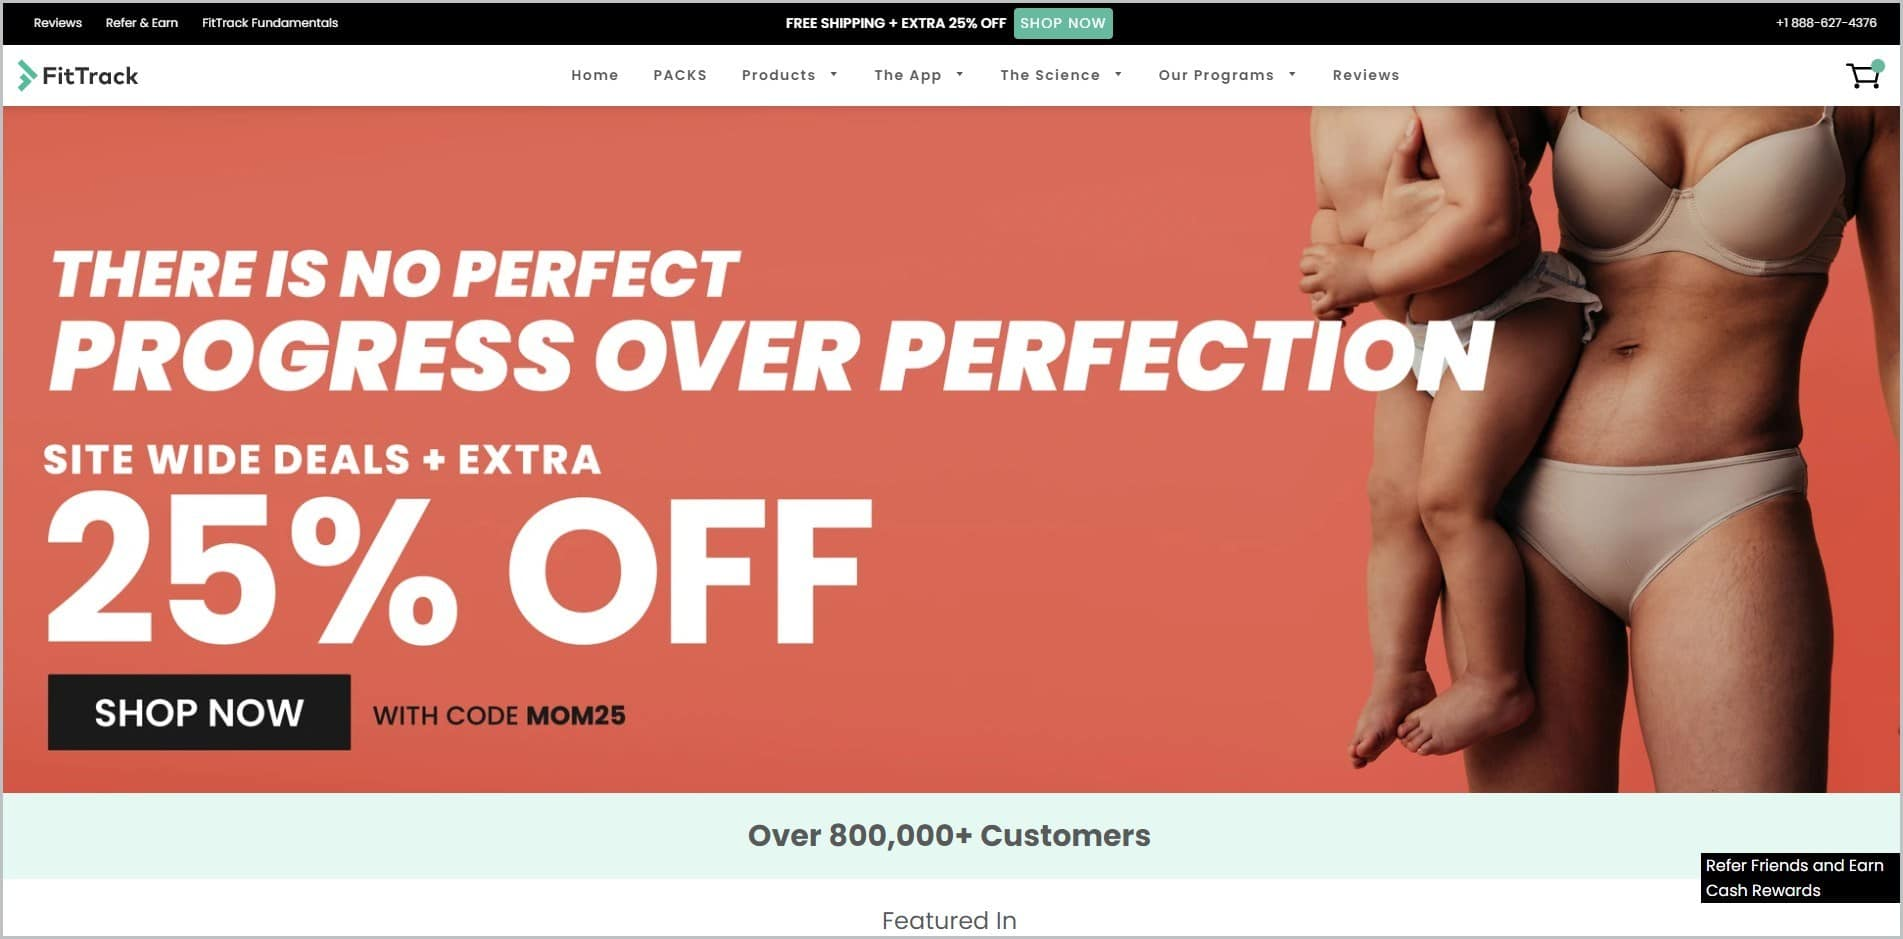 screenshot of FitTrack homepage with black announcement bar, white header with the website's name and main navigation menu, it showcases a partial image of a woman and her baby in nude-color underwear